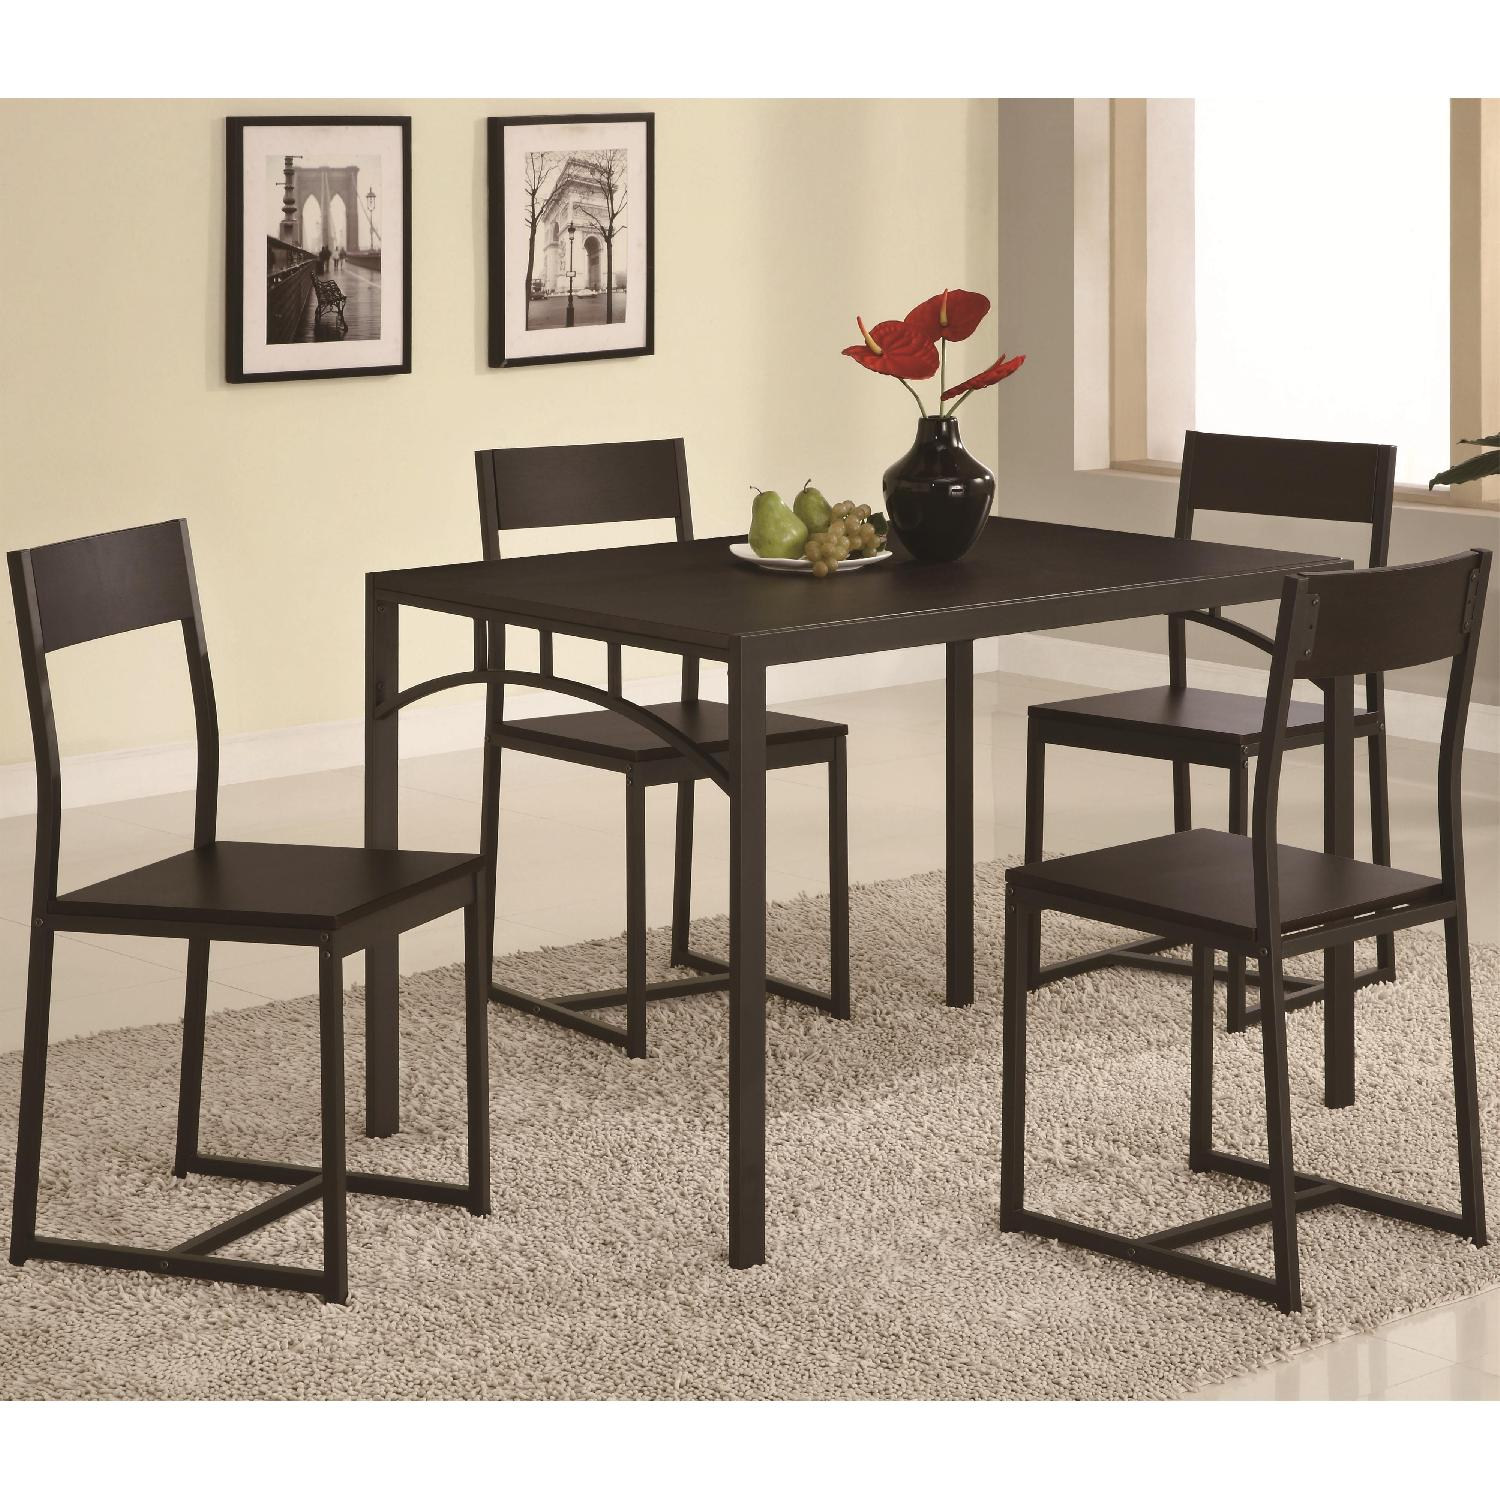 5-Piece Simple Chic Dining Set w/ Metal Frame & Wood Top - image-1